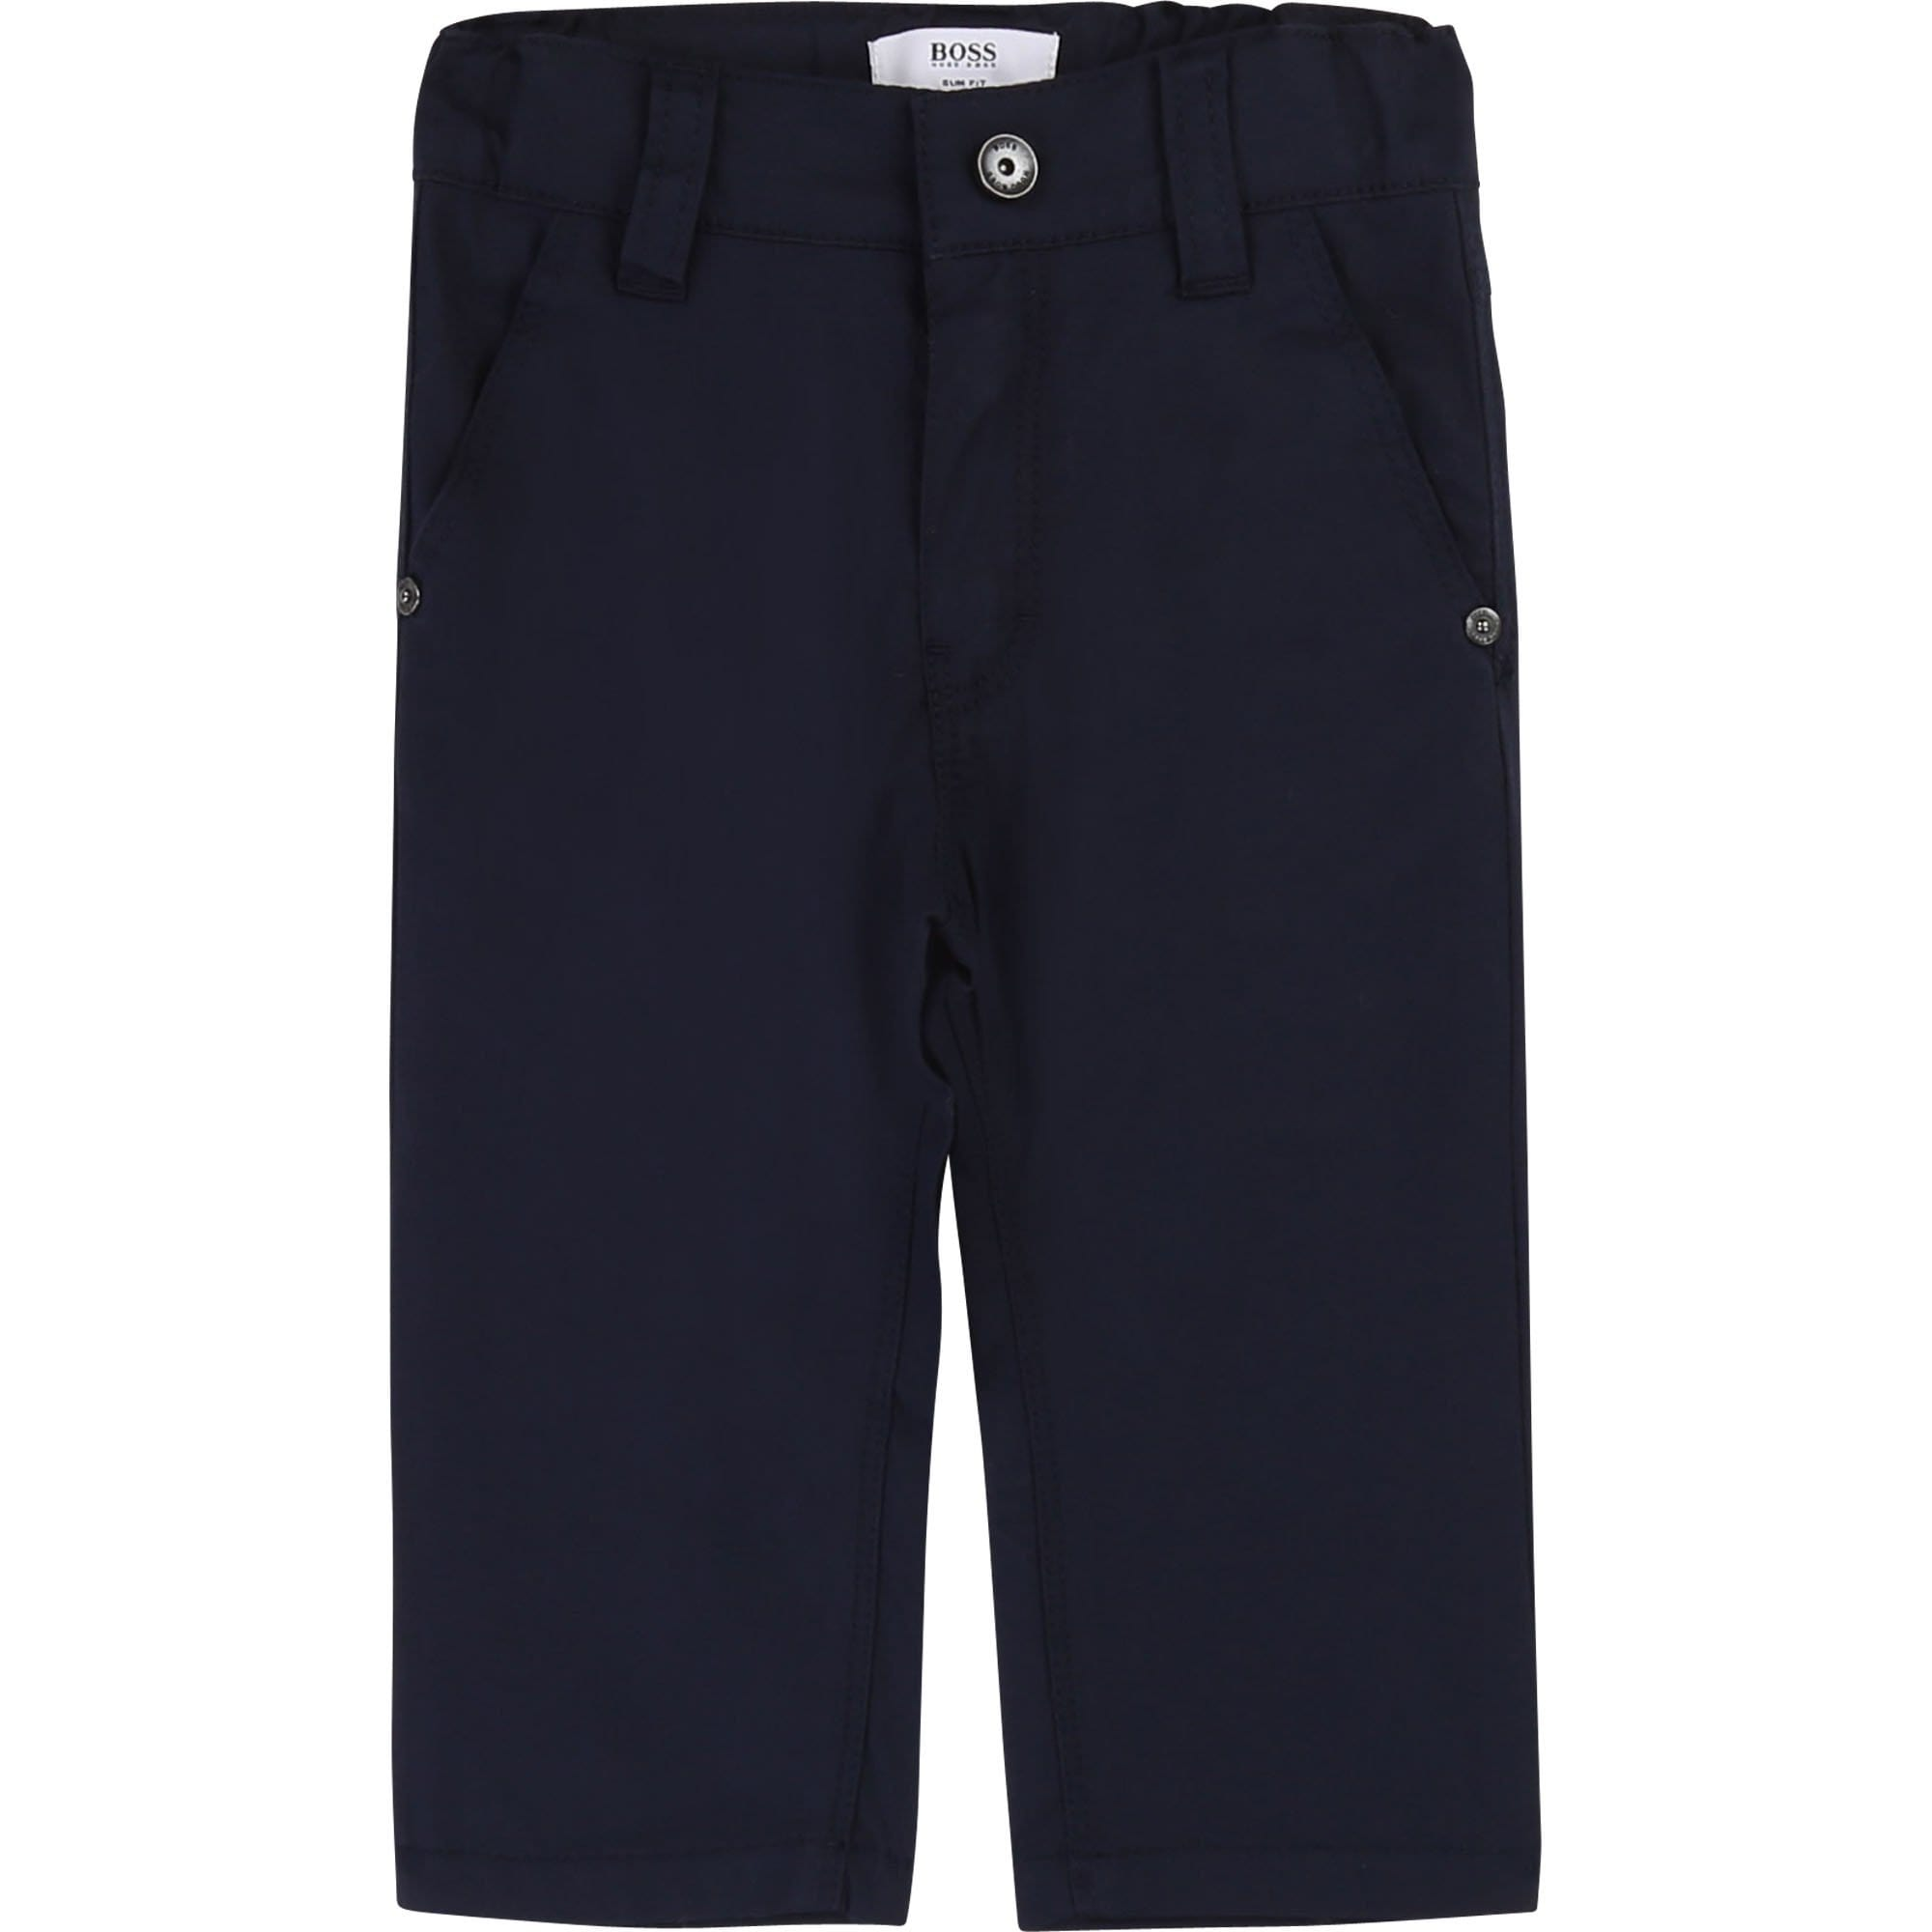 Hugo Boss Baby Chino Pants (4696901681283)